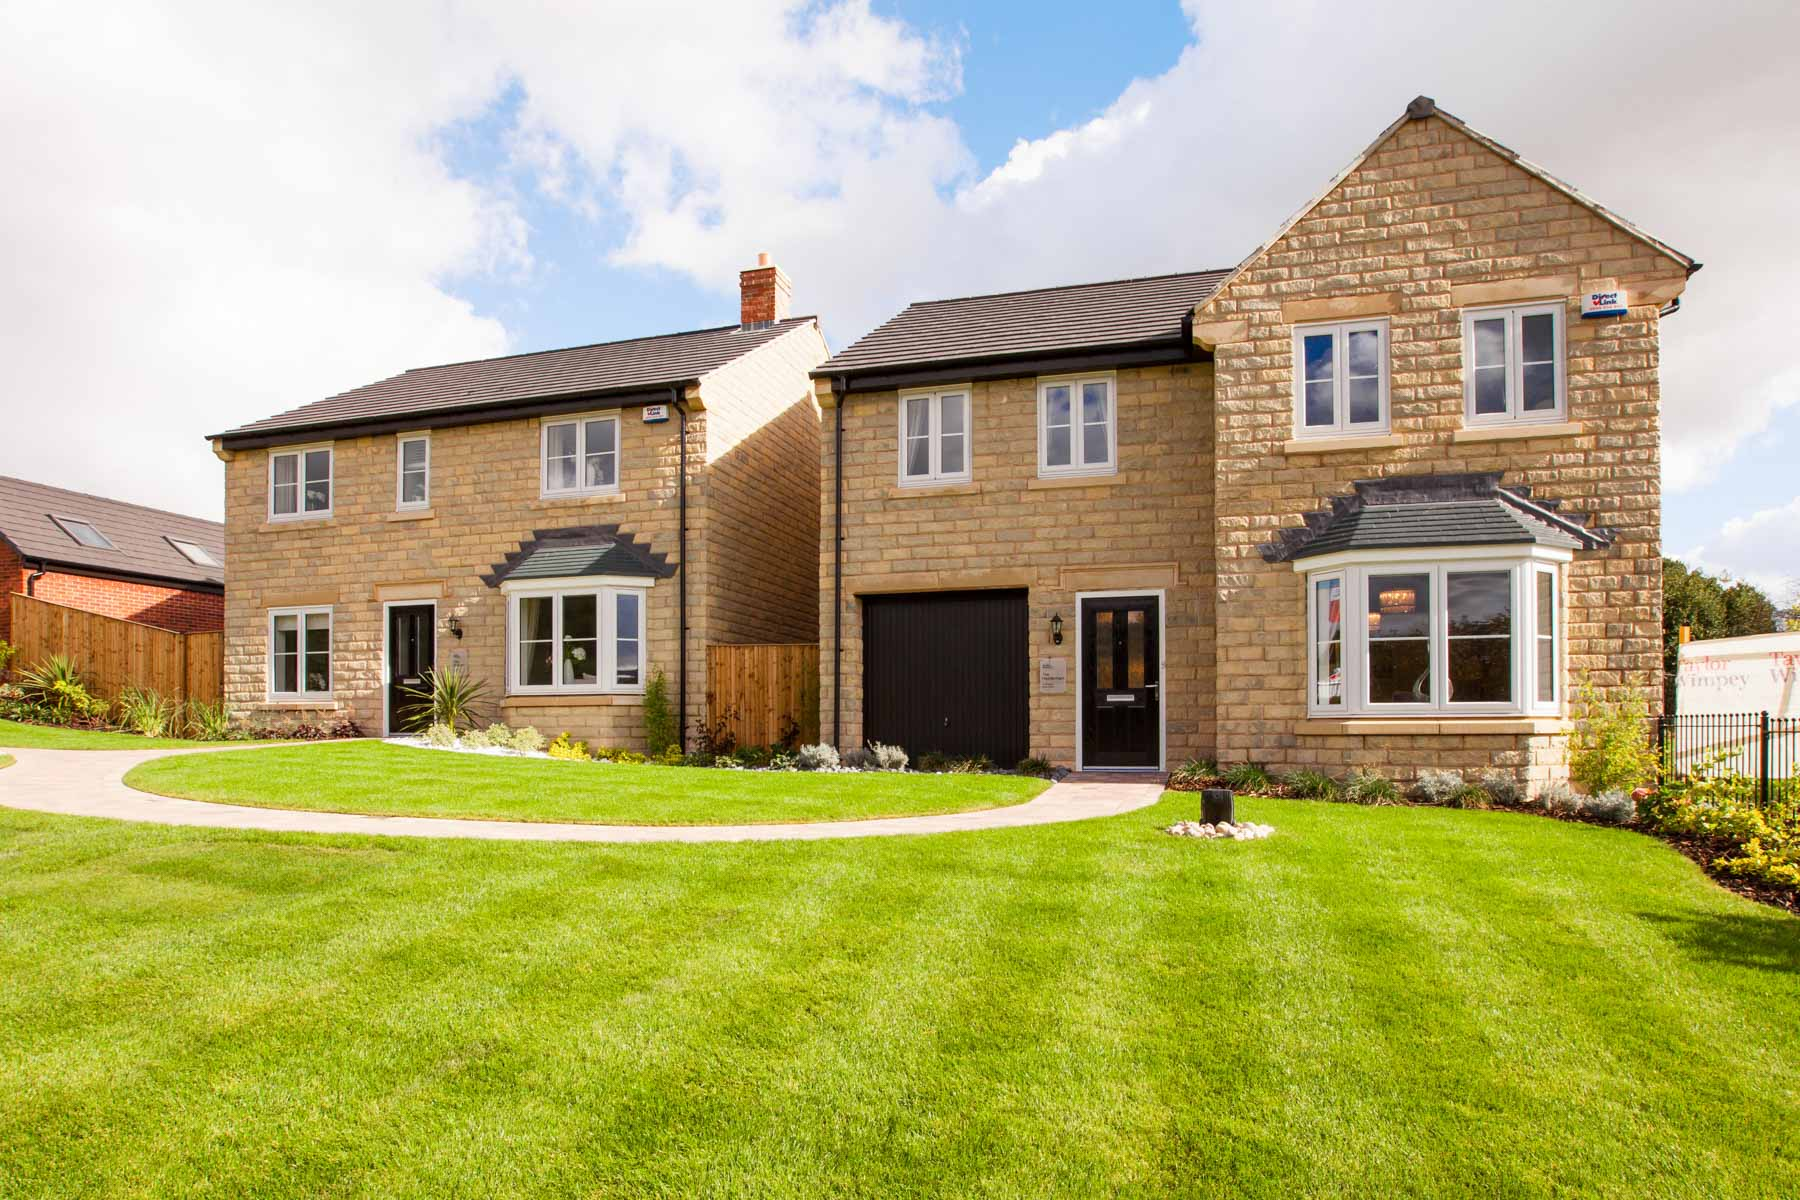 Taylor wimpey at north road glossop taylor wimpey for The laurel house